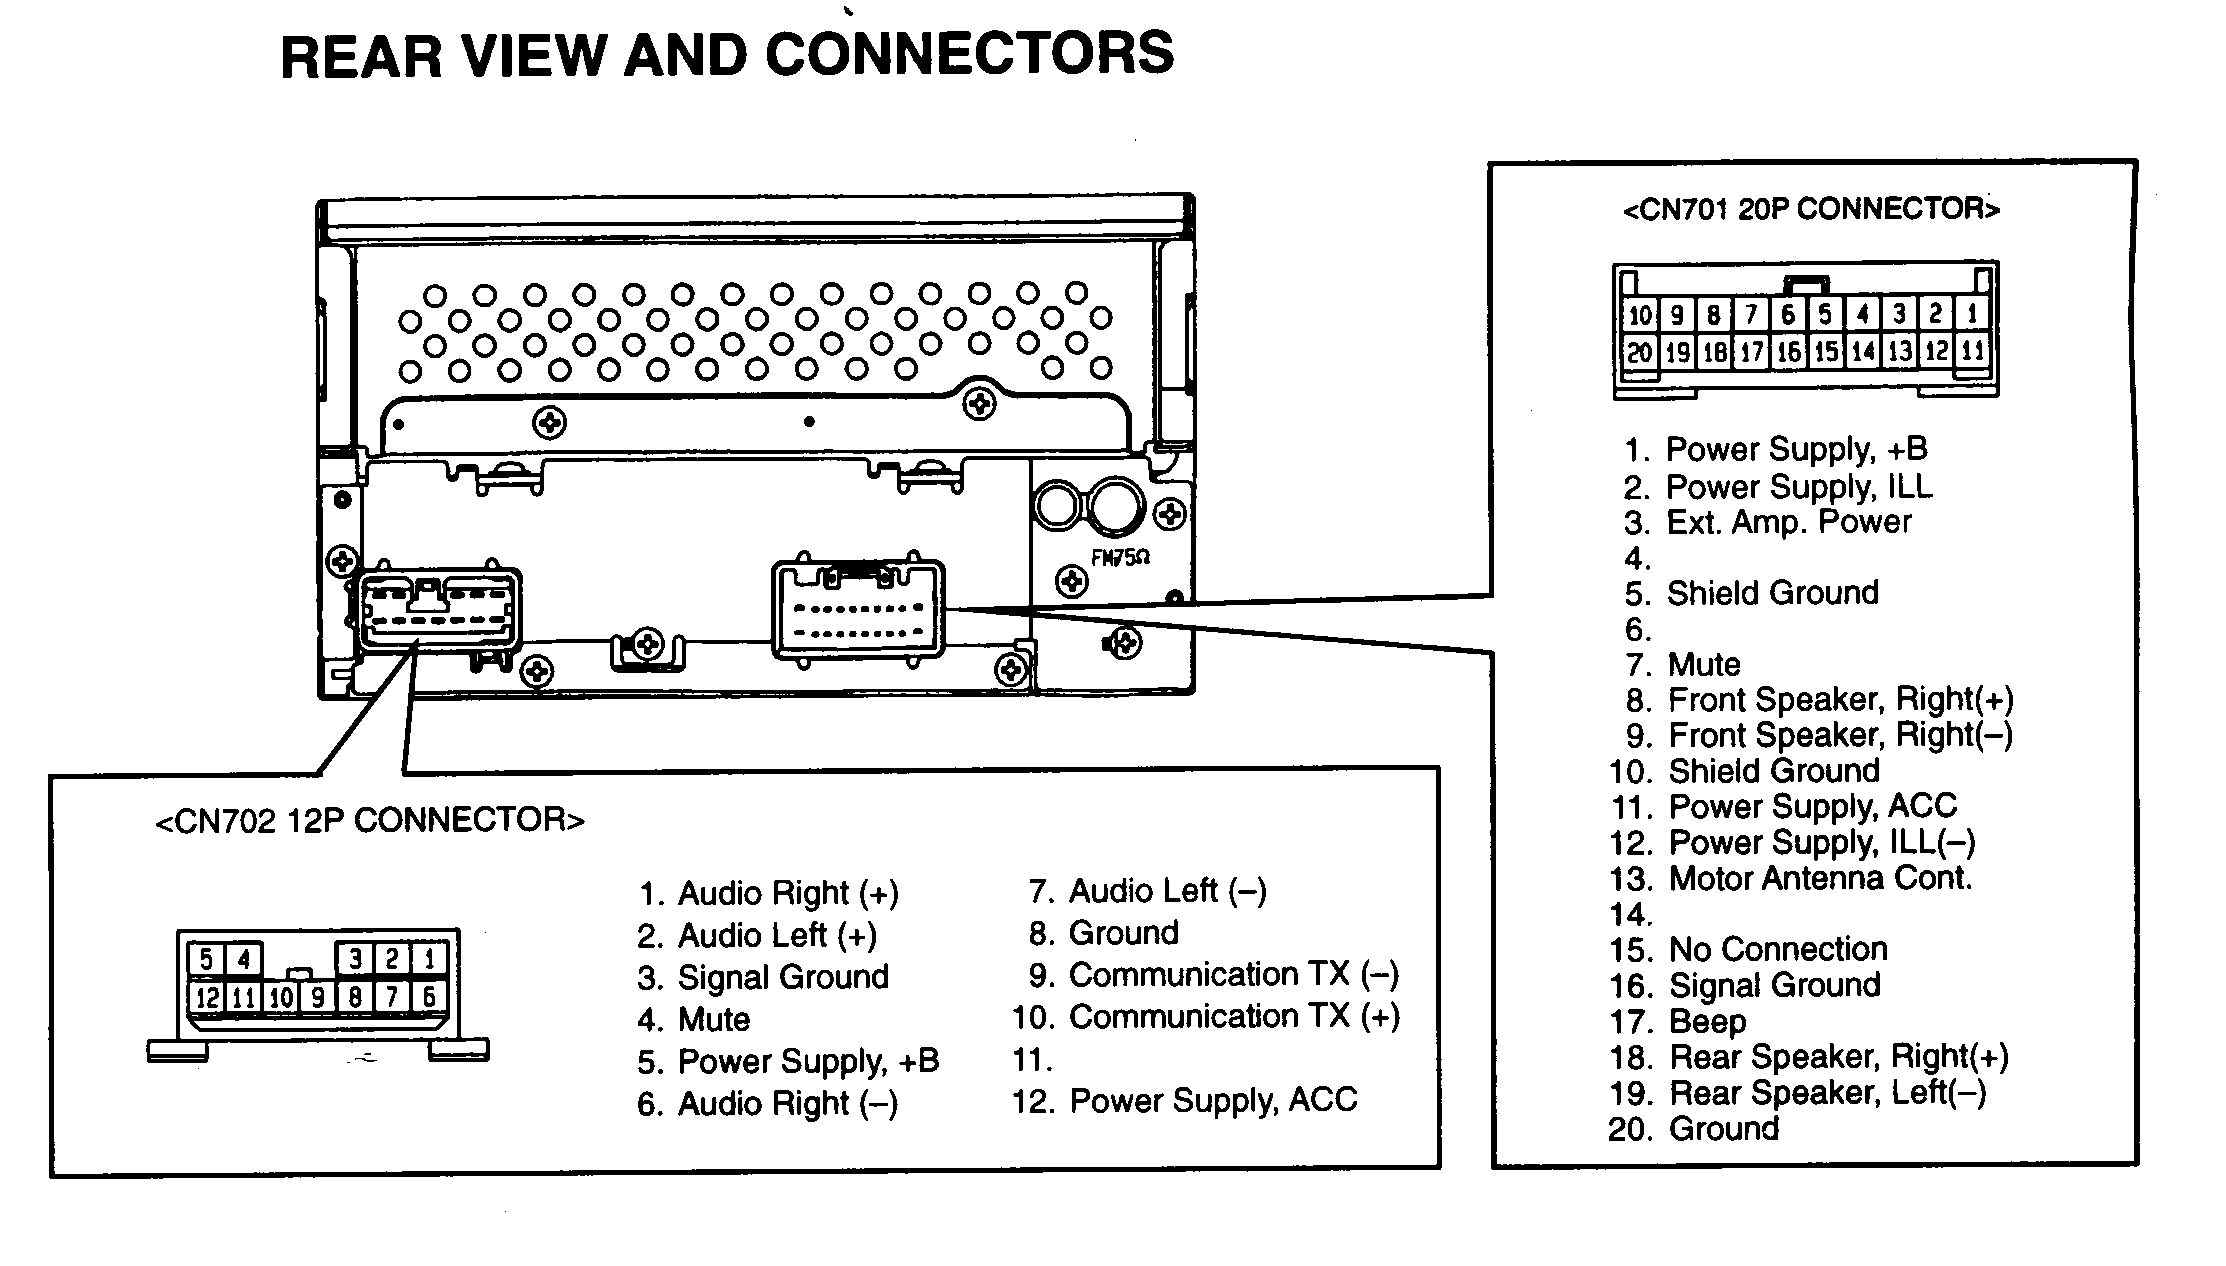 boss cd player wiring diagram all wiring diagram car audio wiring diagrams boss wiring diagrams best kenwood car stereo wiring diagram boss cd player wiring diagram